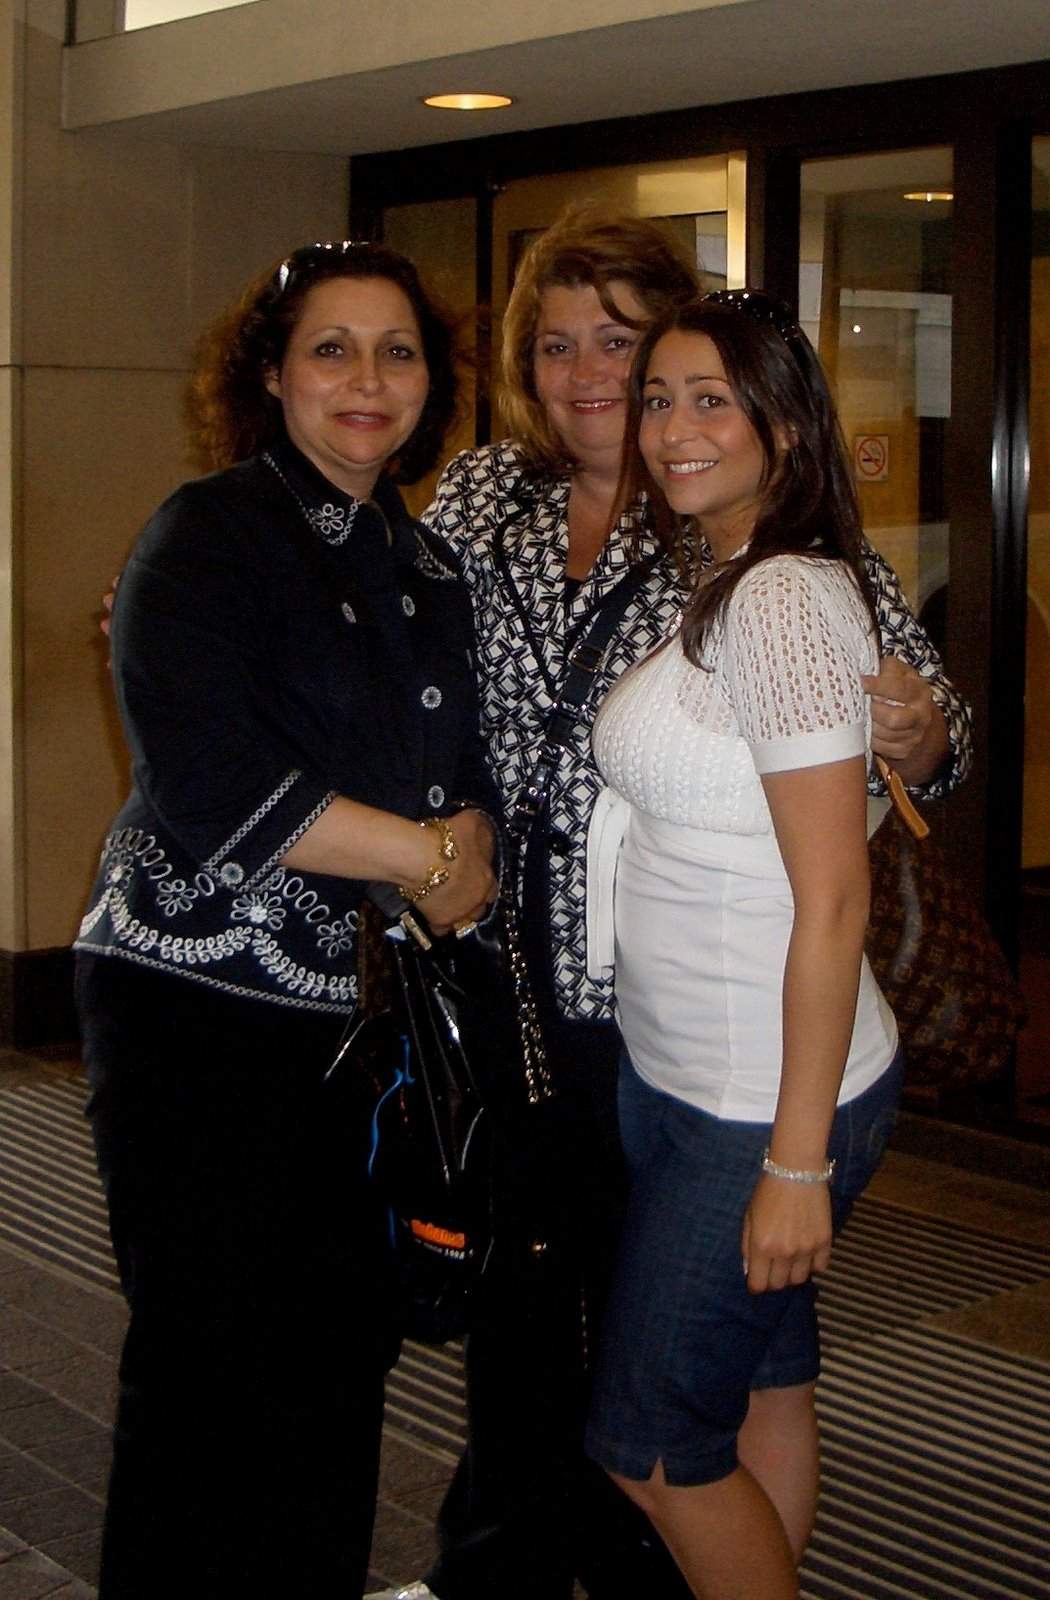 [Ashley+Nemeh+and+her+Mom-trouge!+]